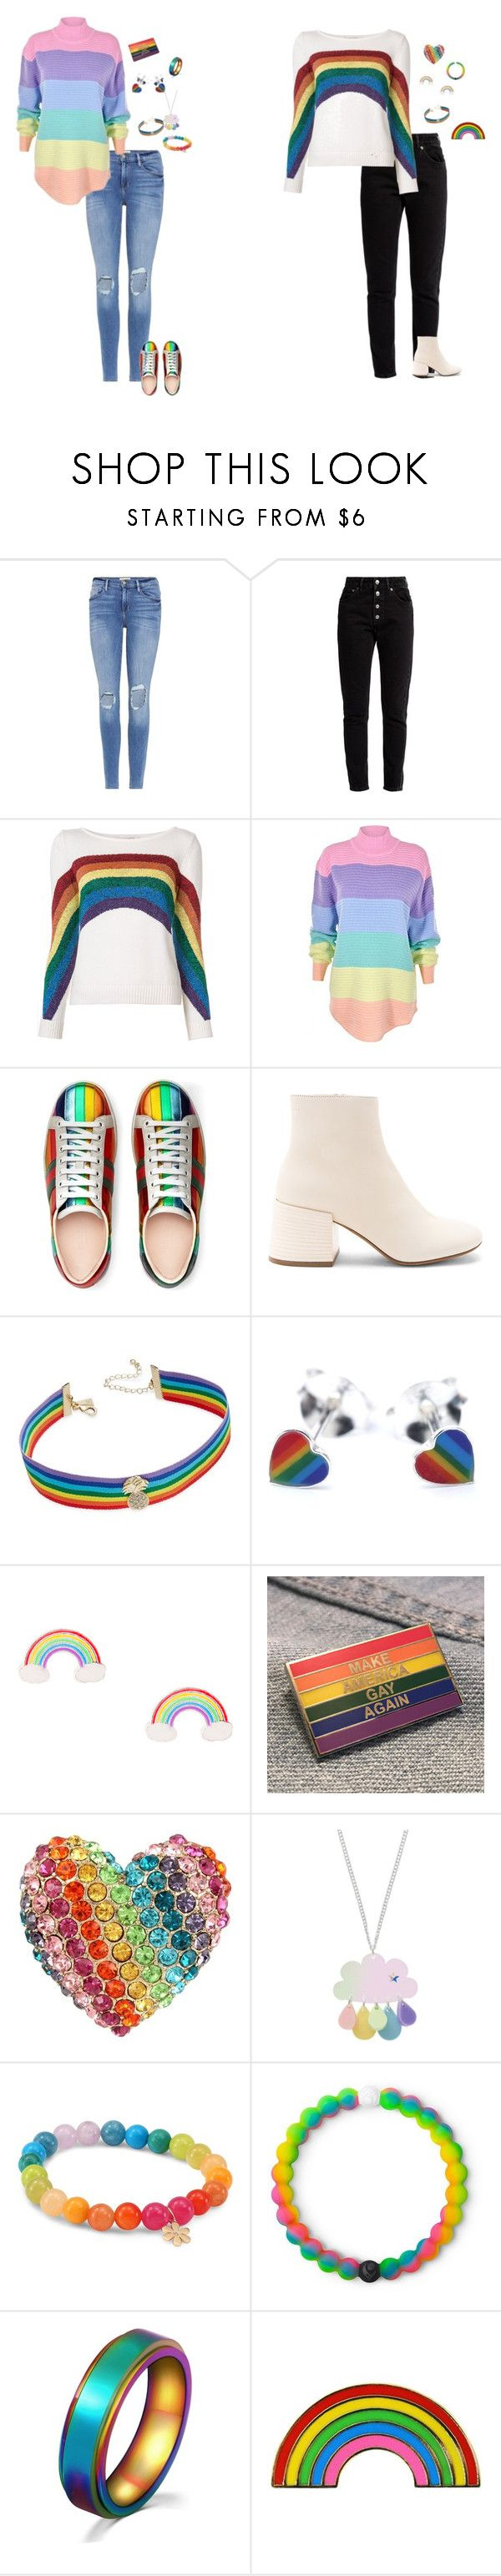 12 best lgbt necklaces - lesbian and gay love images on pinterest